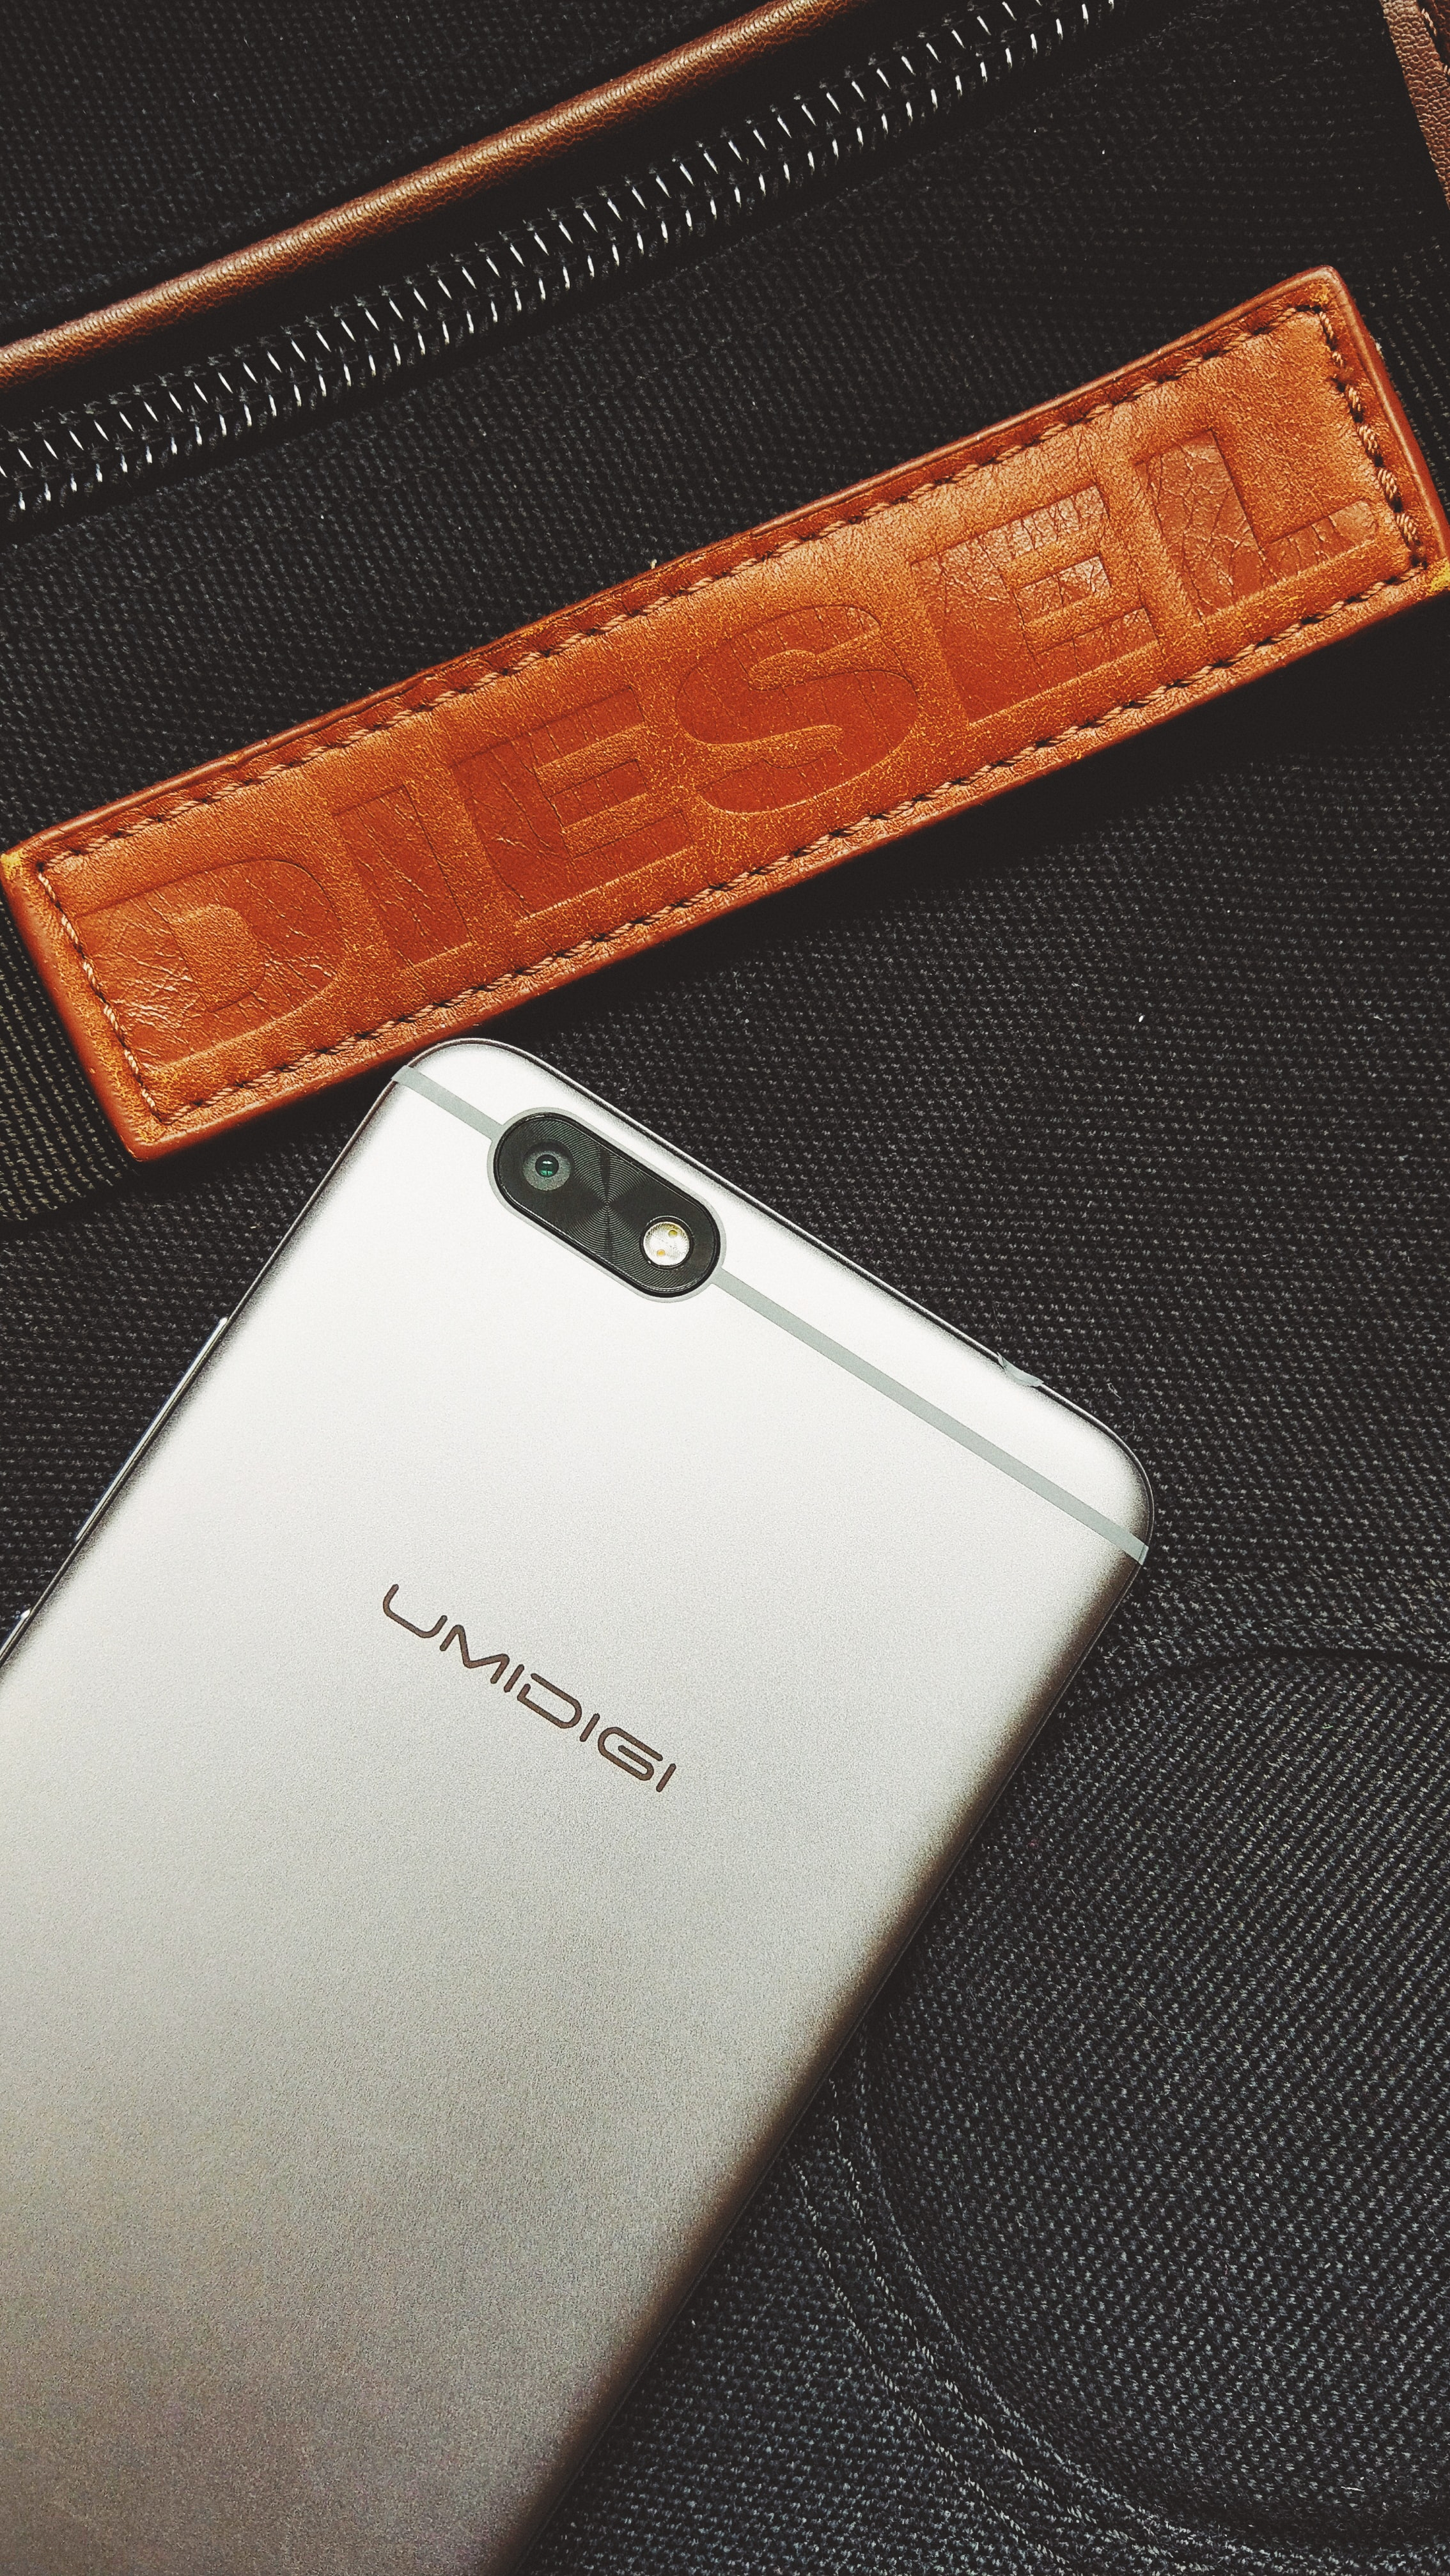 A smartphone on a Diesel branded product.